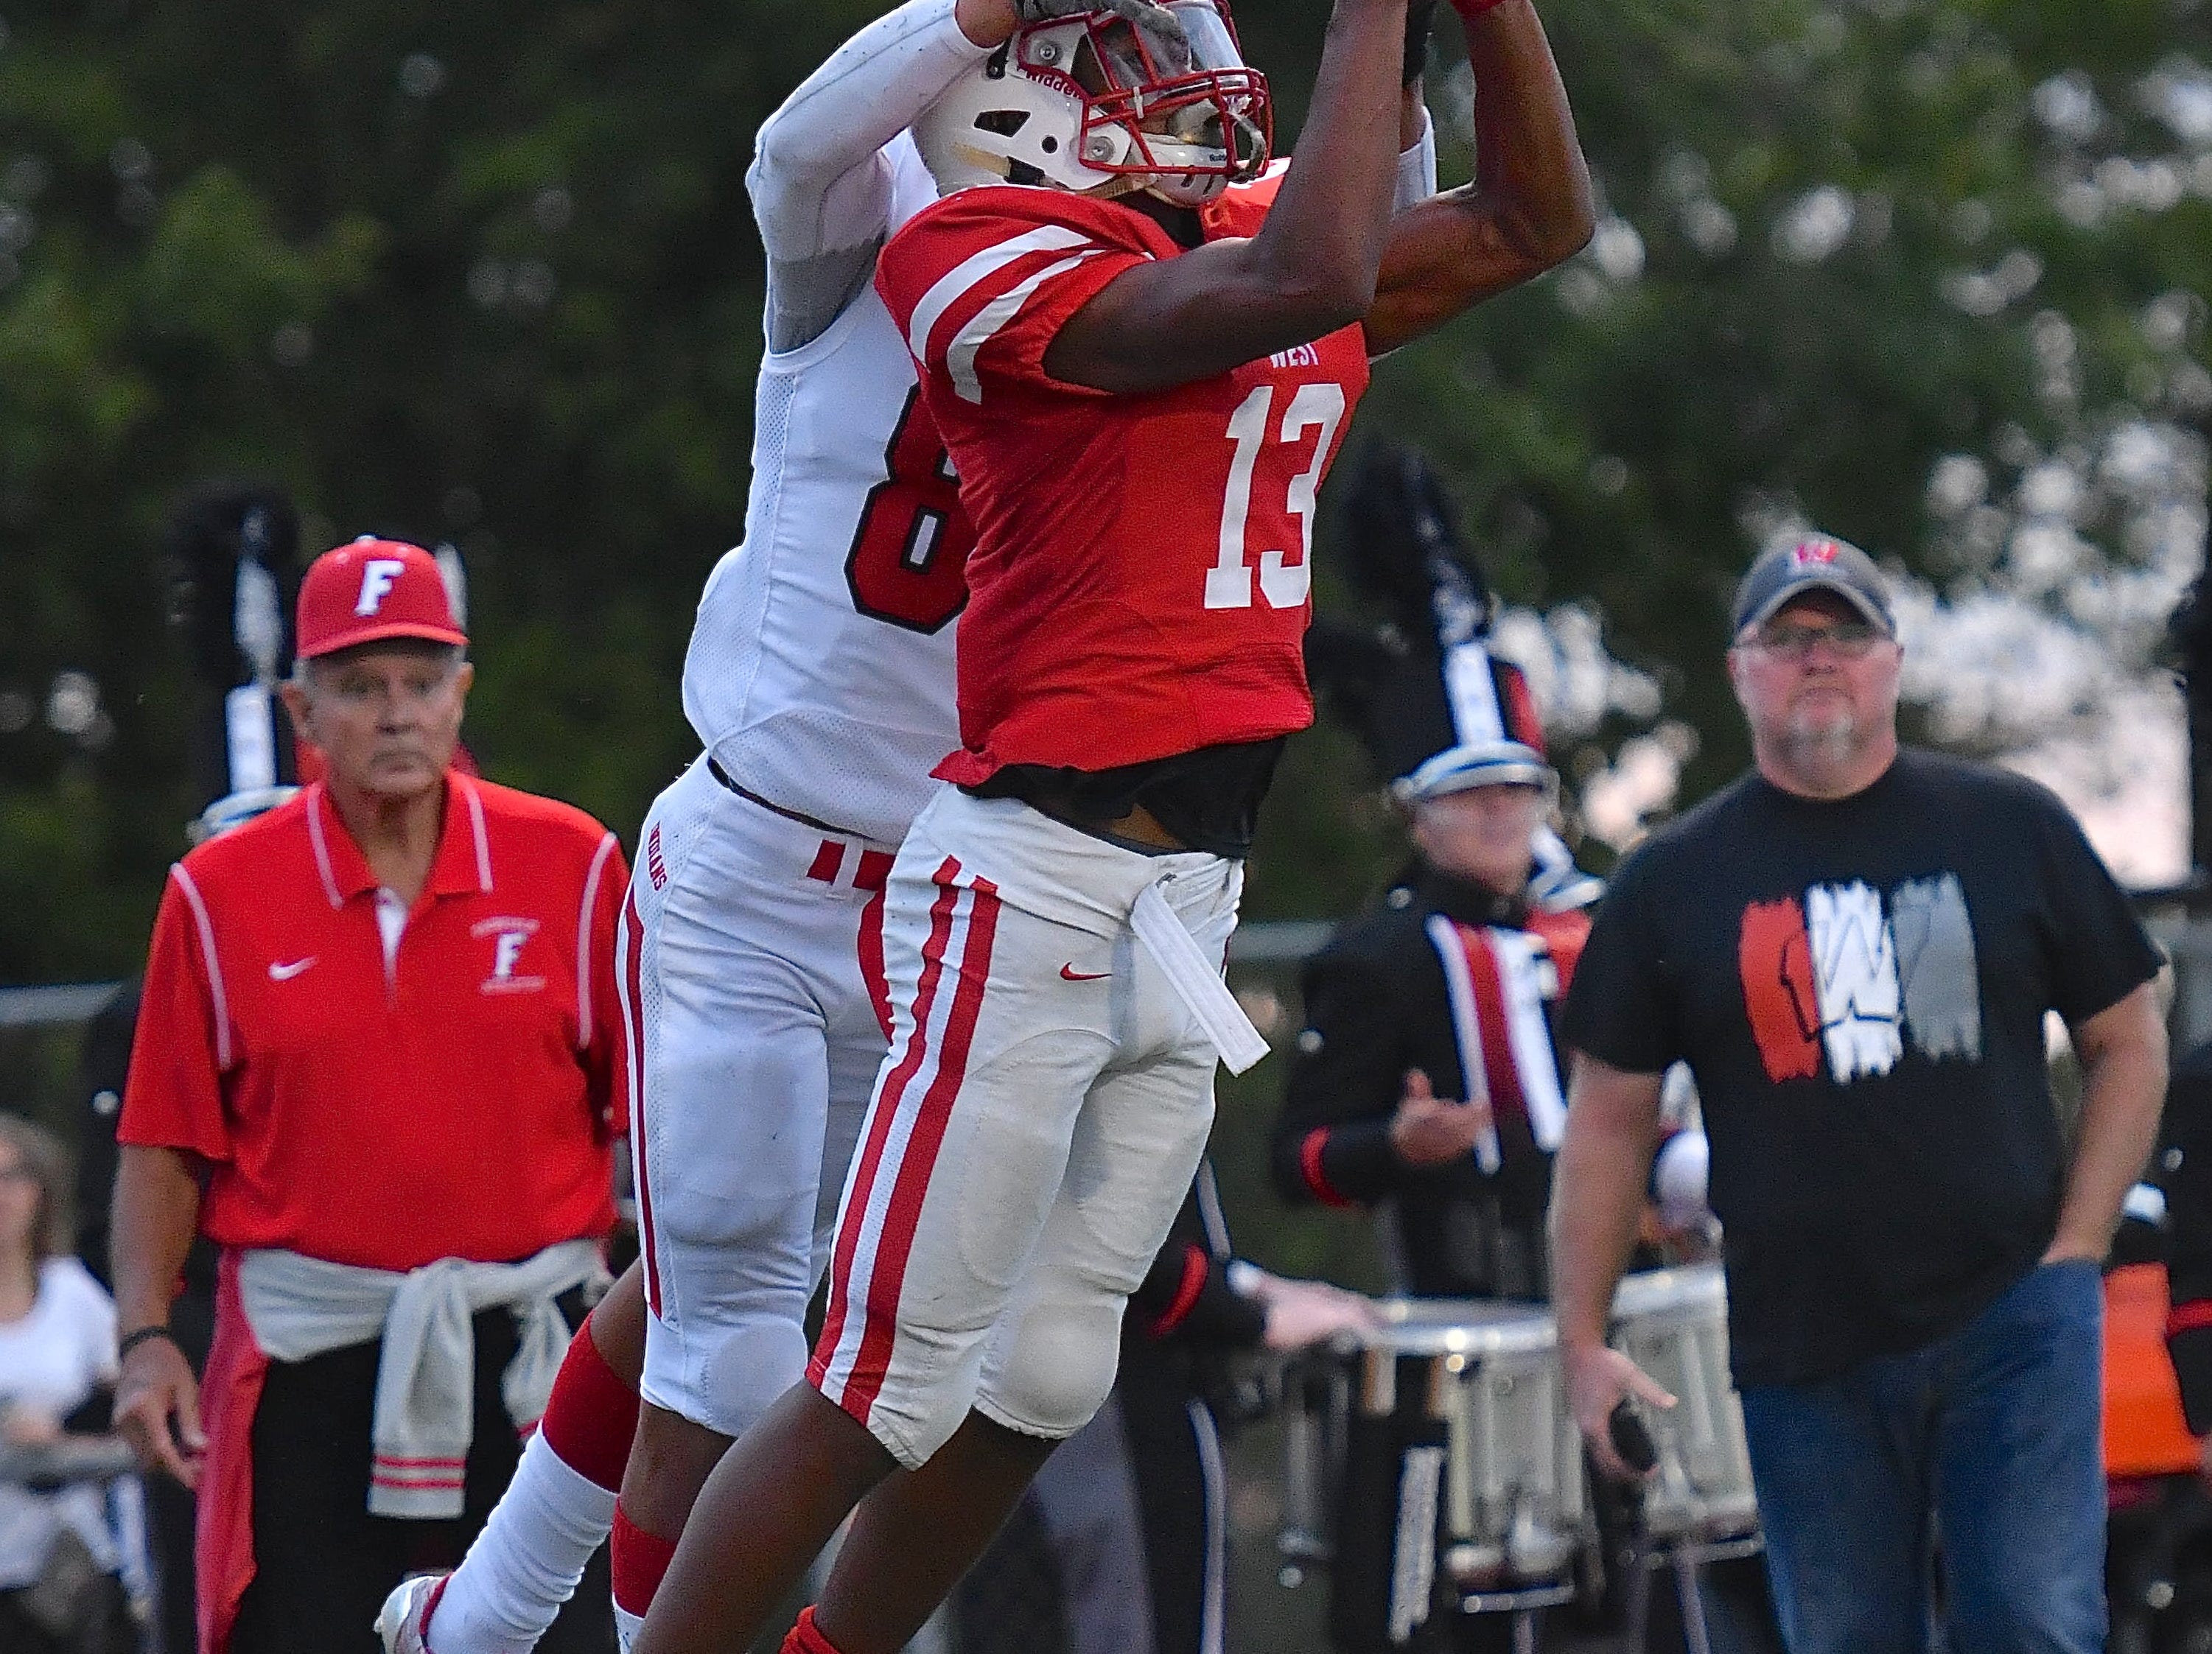 Lakota West's Jeremiah Ross intercepts a pass in the end zone for the Firebirds Friday, September 8th at Lakota West High School